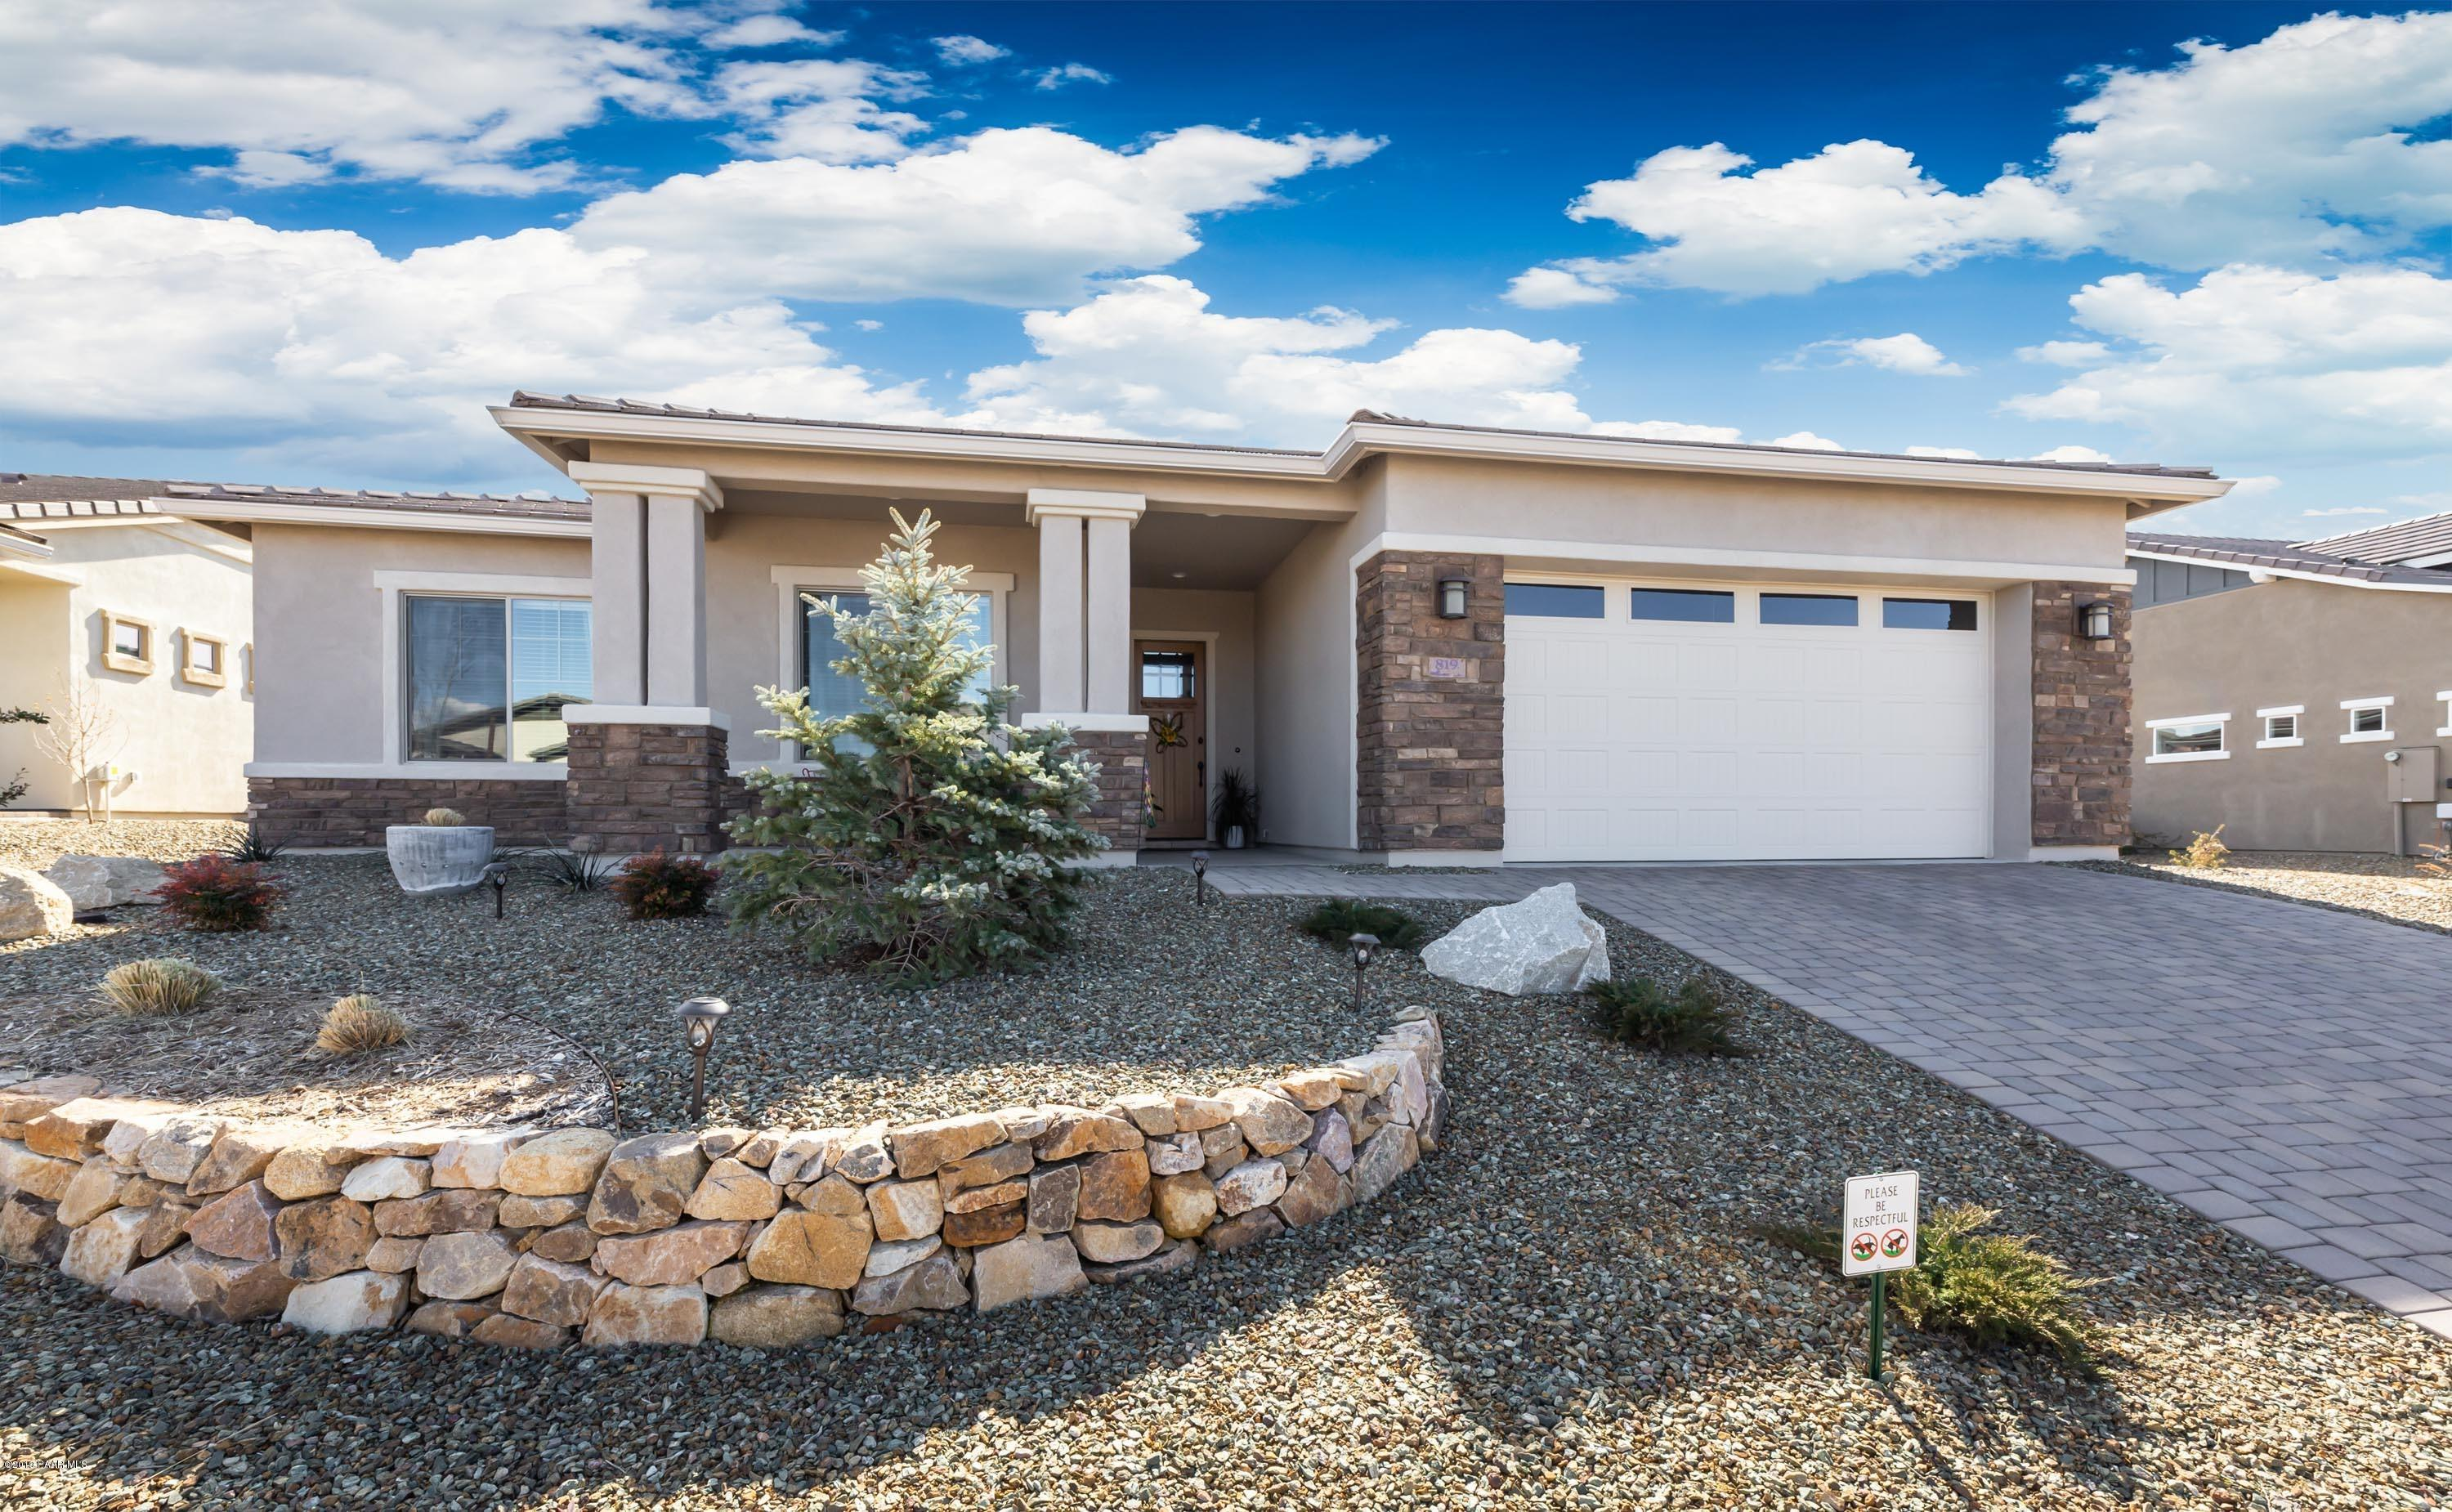 Photo of 819 Chureo, Prescott, AZ 86301